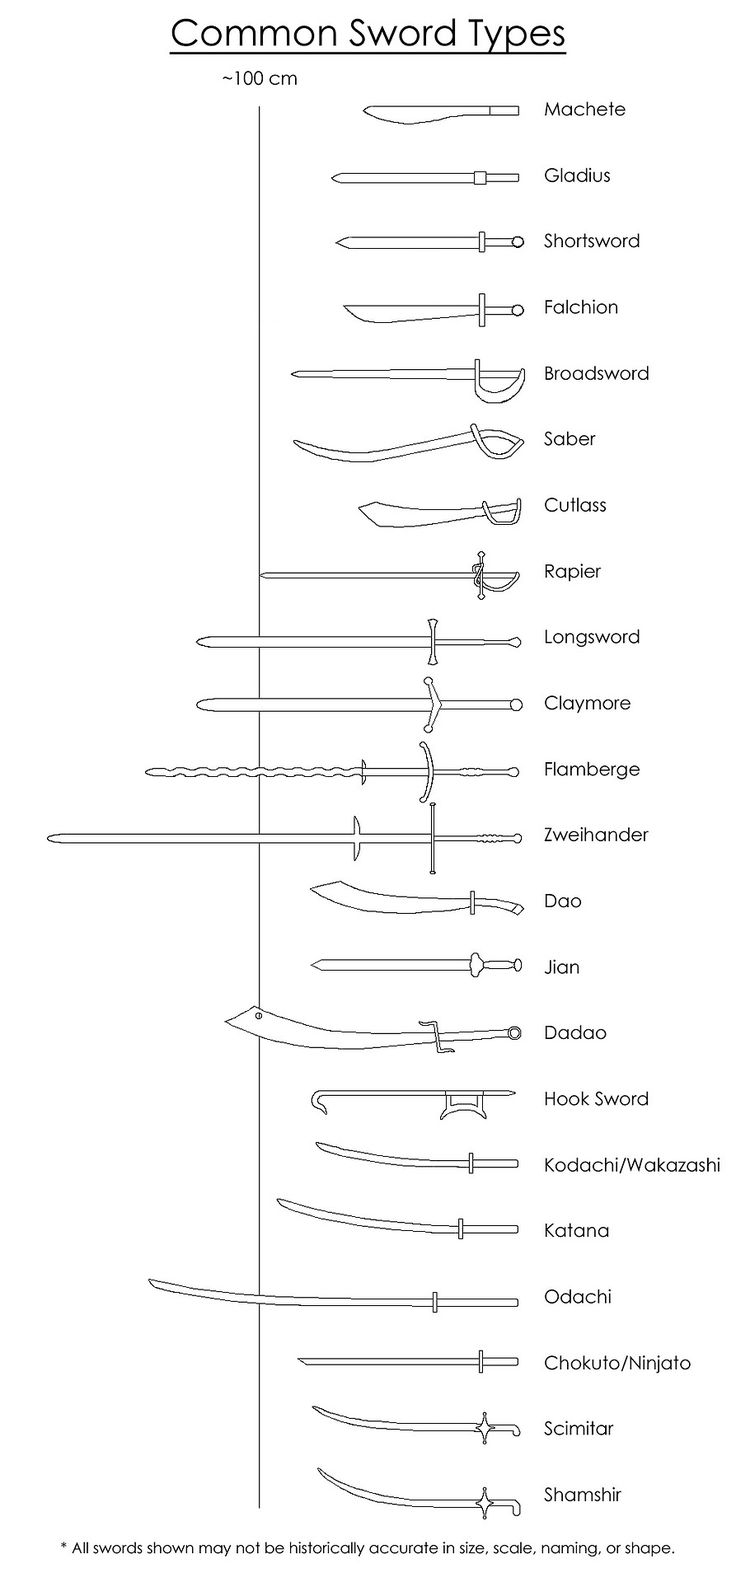 common sword types